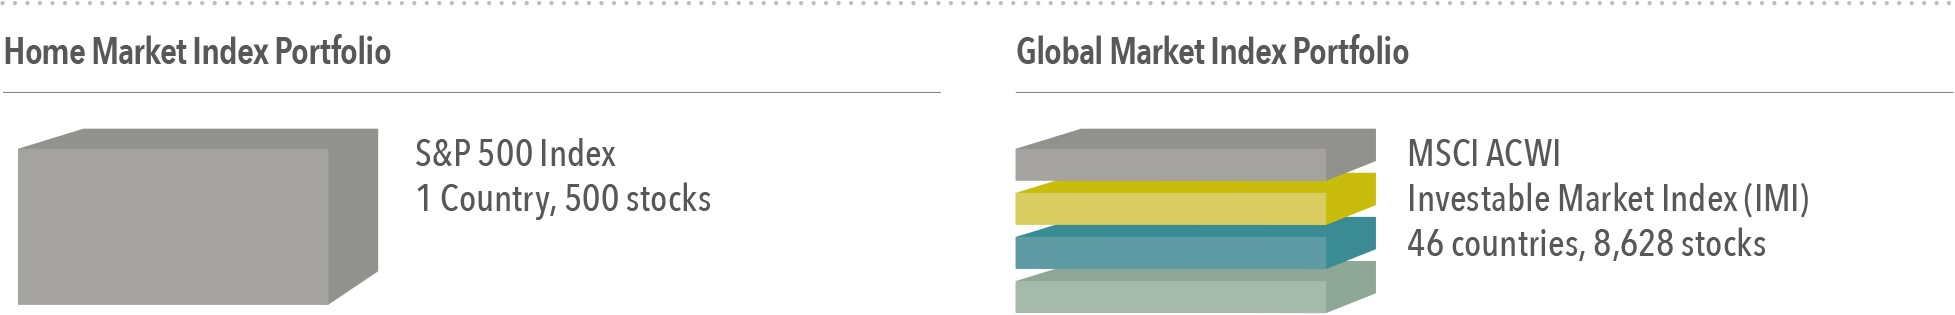 Number of holdings and countries for the S&P 500 Index and MSCI ACWI (All Country World Index) Investable Market Index (IMI) as of December 31, 2016. The S&P data is provided by Standard & Poor's Index Services Group. MSCI data ©MSCI 2017, all rights reserved. International investing involves special risks such as currency fluctuation and political stability. Investing in emerging markets may accentuate those risks. Diversification does not eliminate the risk of market loss. Indices are not available for direct investment